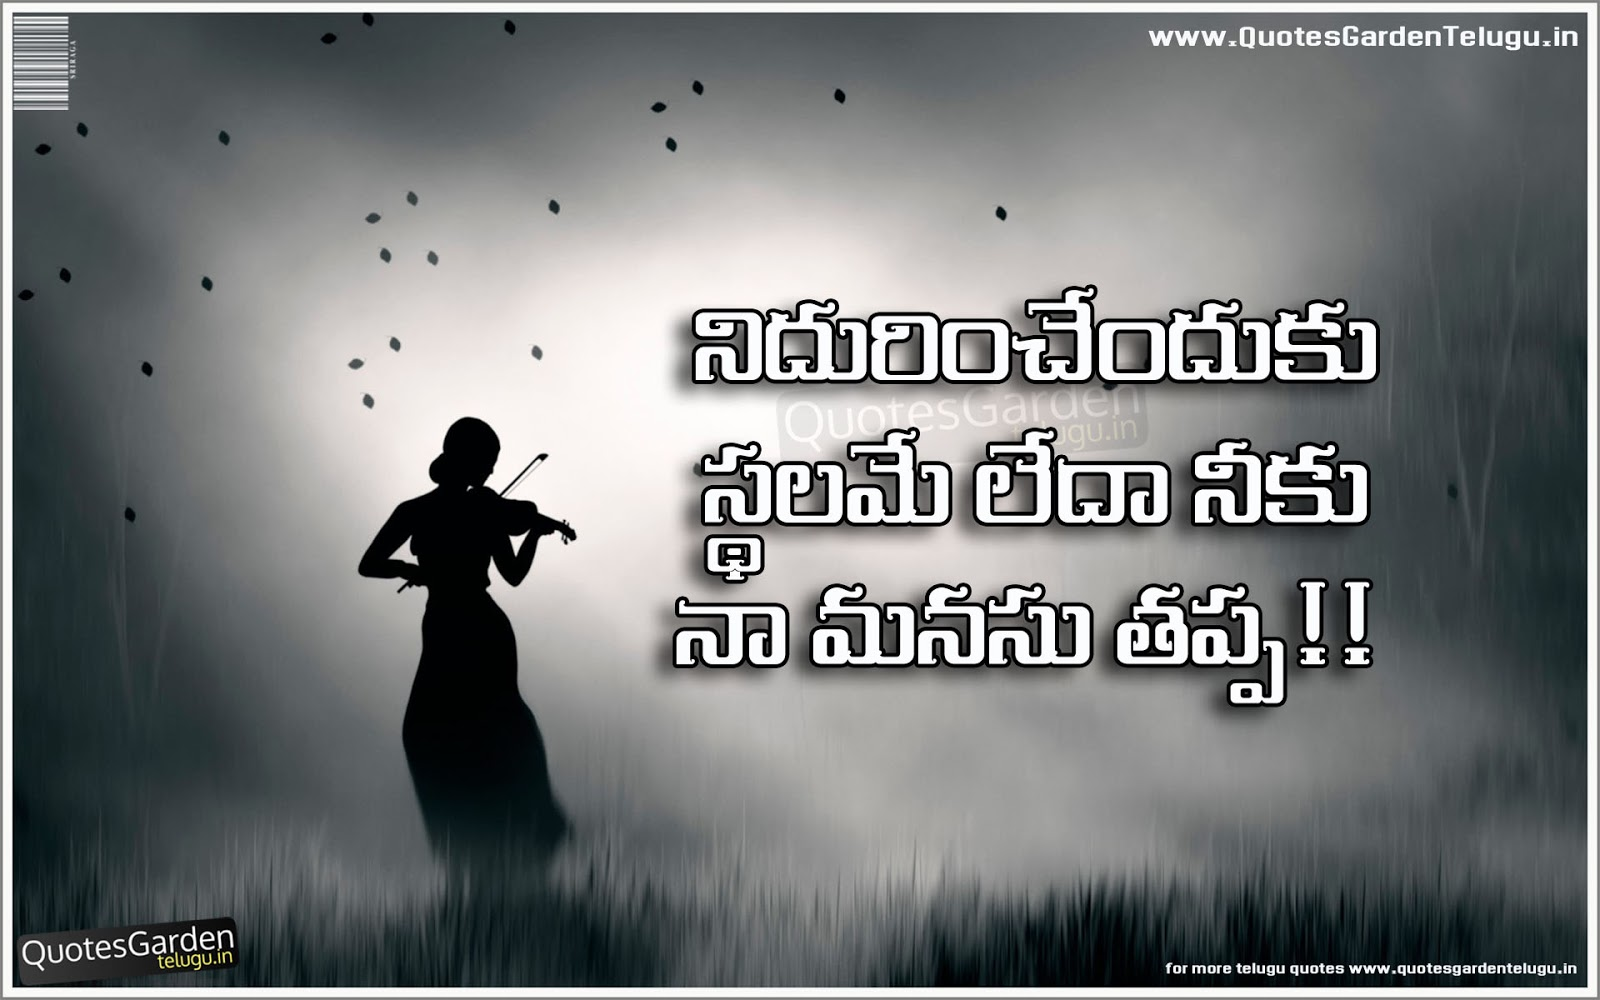 New Telugu Love quotes | QUOTES GARDEN TELUGU | Telugu ...